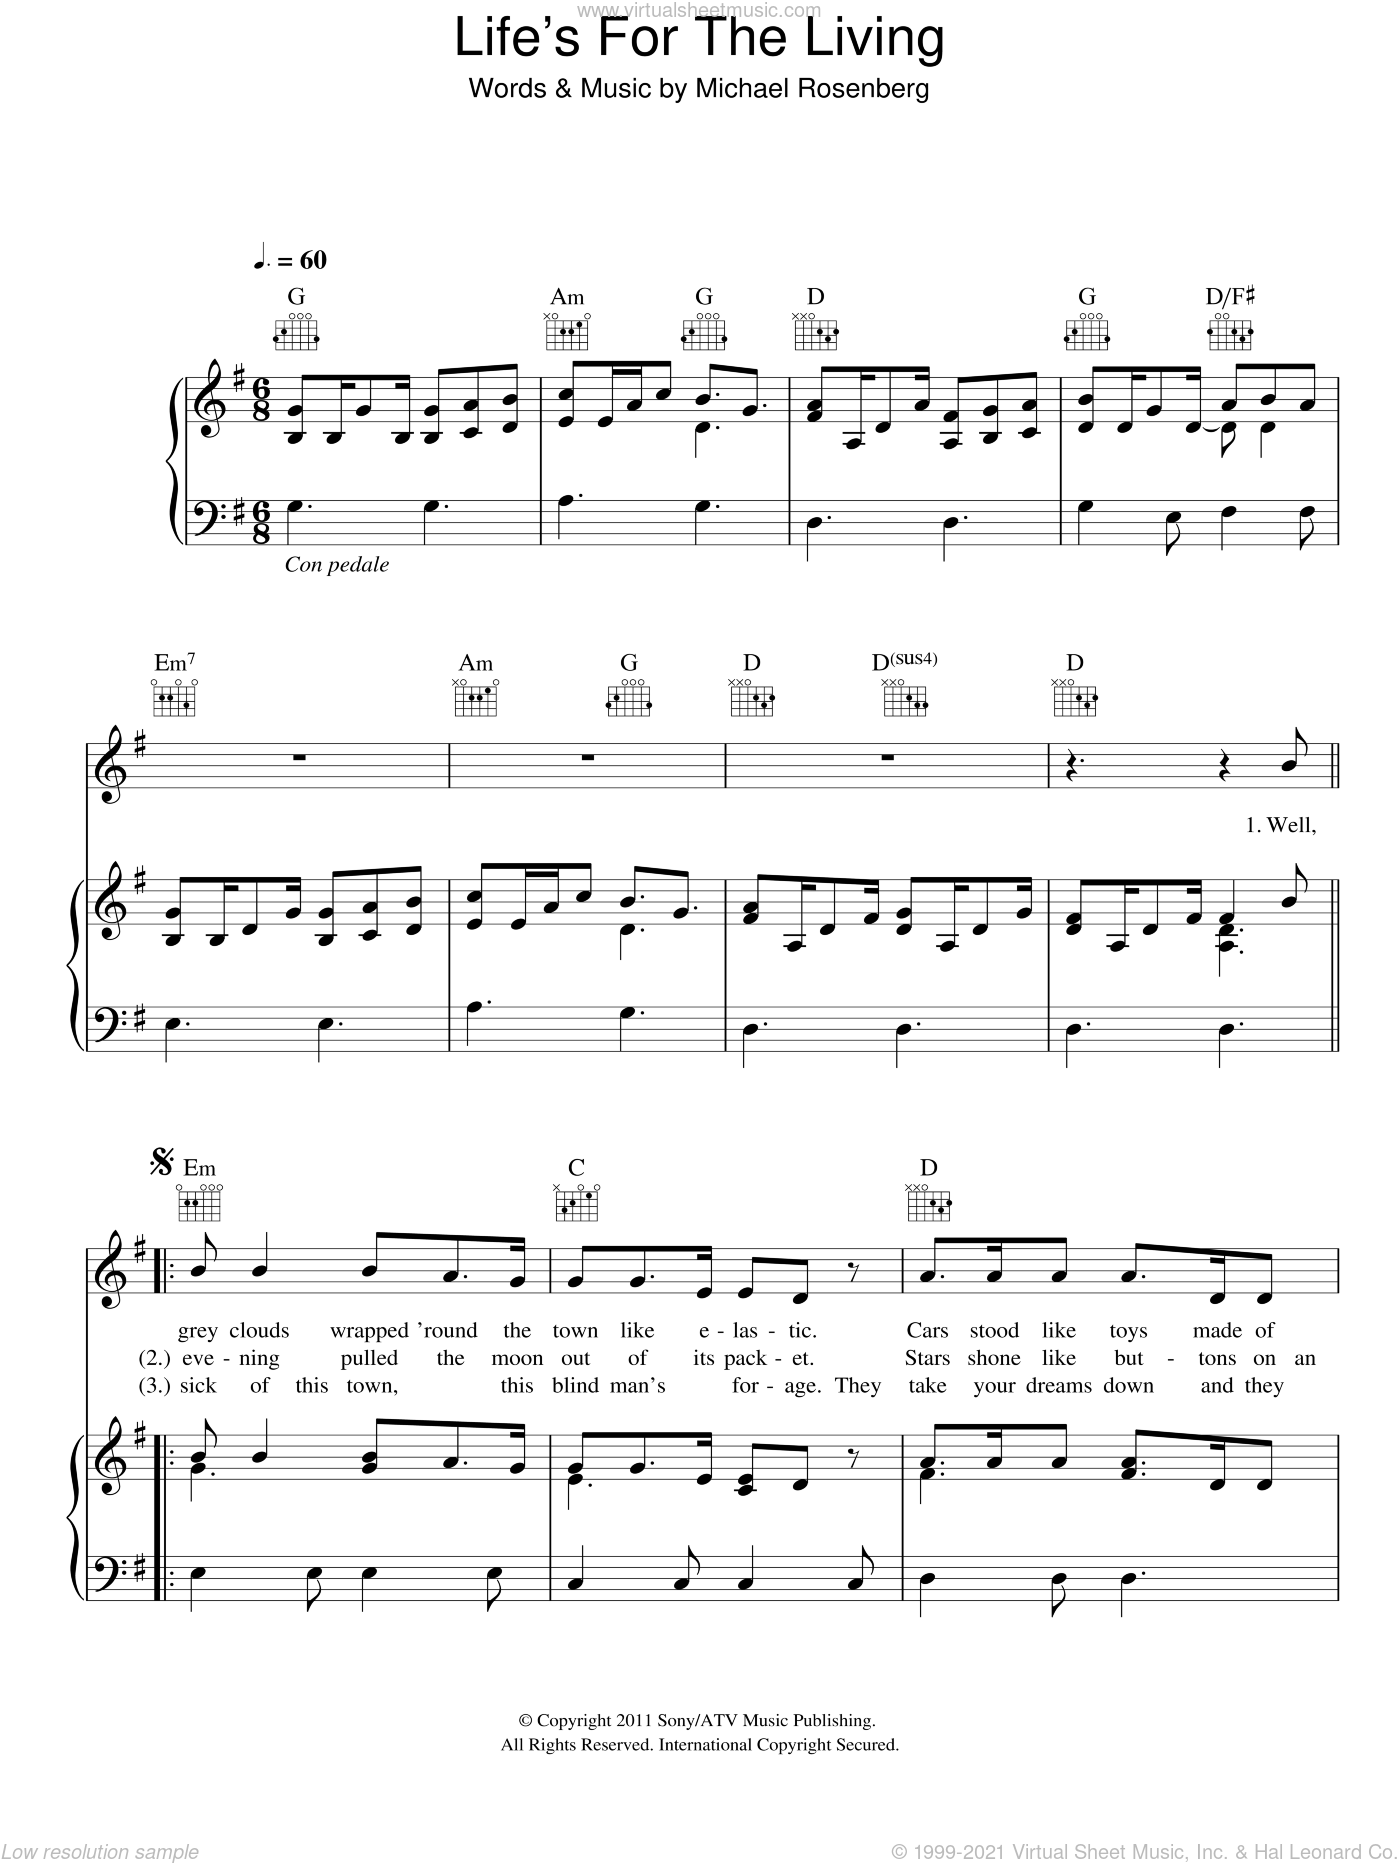 Life's For The Living sheet music for voice, piano or guitar by Passenger and Michael Rosenberg, intermediate skill level